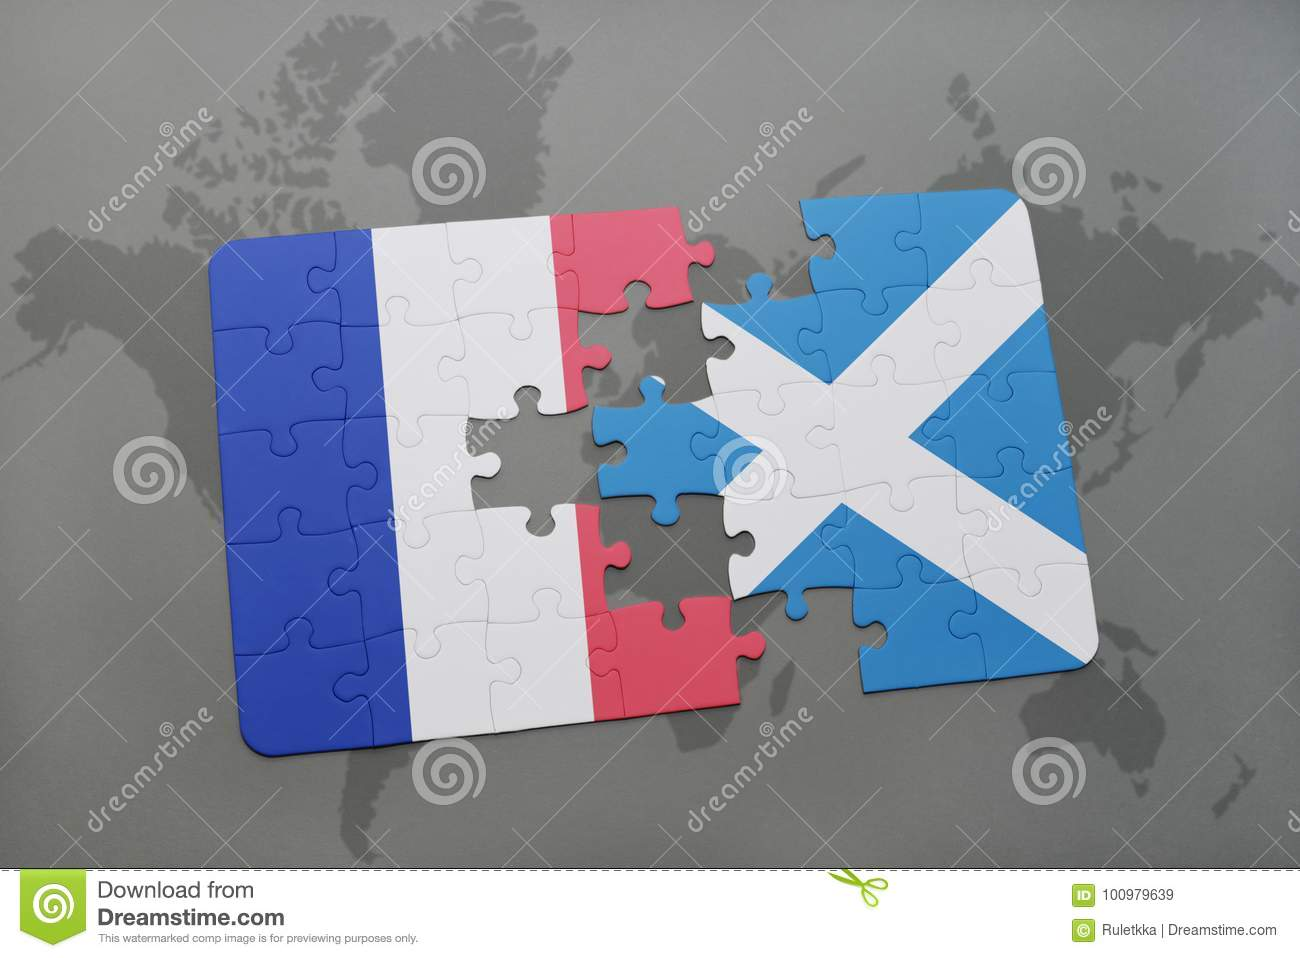 Puzzle With The National Flag Of France And Scotland On A World Map moreover Scotland   history   geography   Britannica as well  besides Where is Dunferine on map of Scotland furthermore  together with  in addition Scotland Map moreover Map shows Scotland is the only country in the world where Coca Cola as well London on the World Map further United Kingdom Map   England  Scotland  Northern Ireland  Wales in addition Oklahoma map with towns  412640 furthermore Scotland On World Map   About Maps as well  also  moreover Gazetteer for Scotland  Map of Scotland also Scottish map law bans putting Shetland in a box   to the delight. on scotland on world map